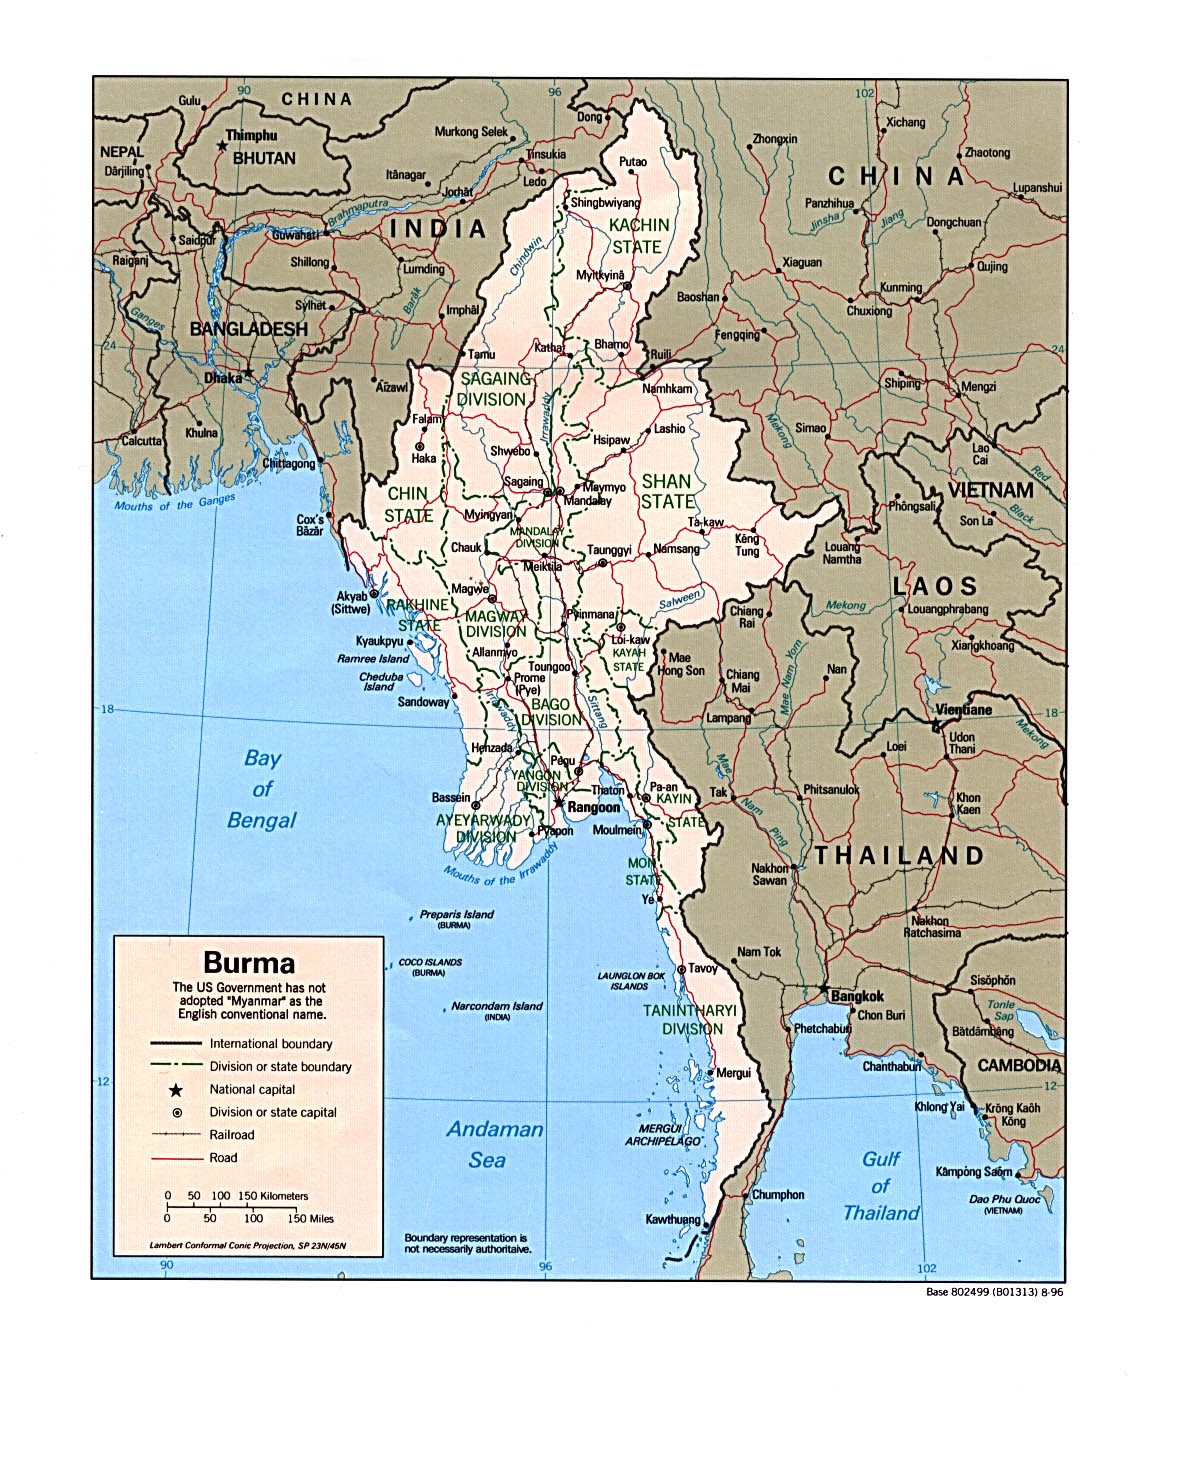 Online burma library reading room maps and satellite imagery title political map of burma 1996 publicscrutiny Image collections